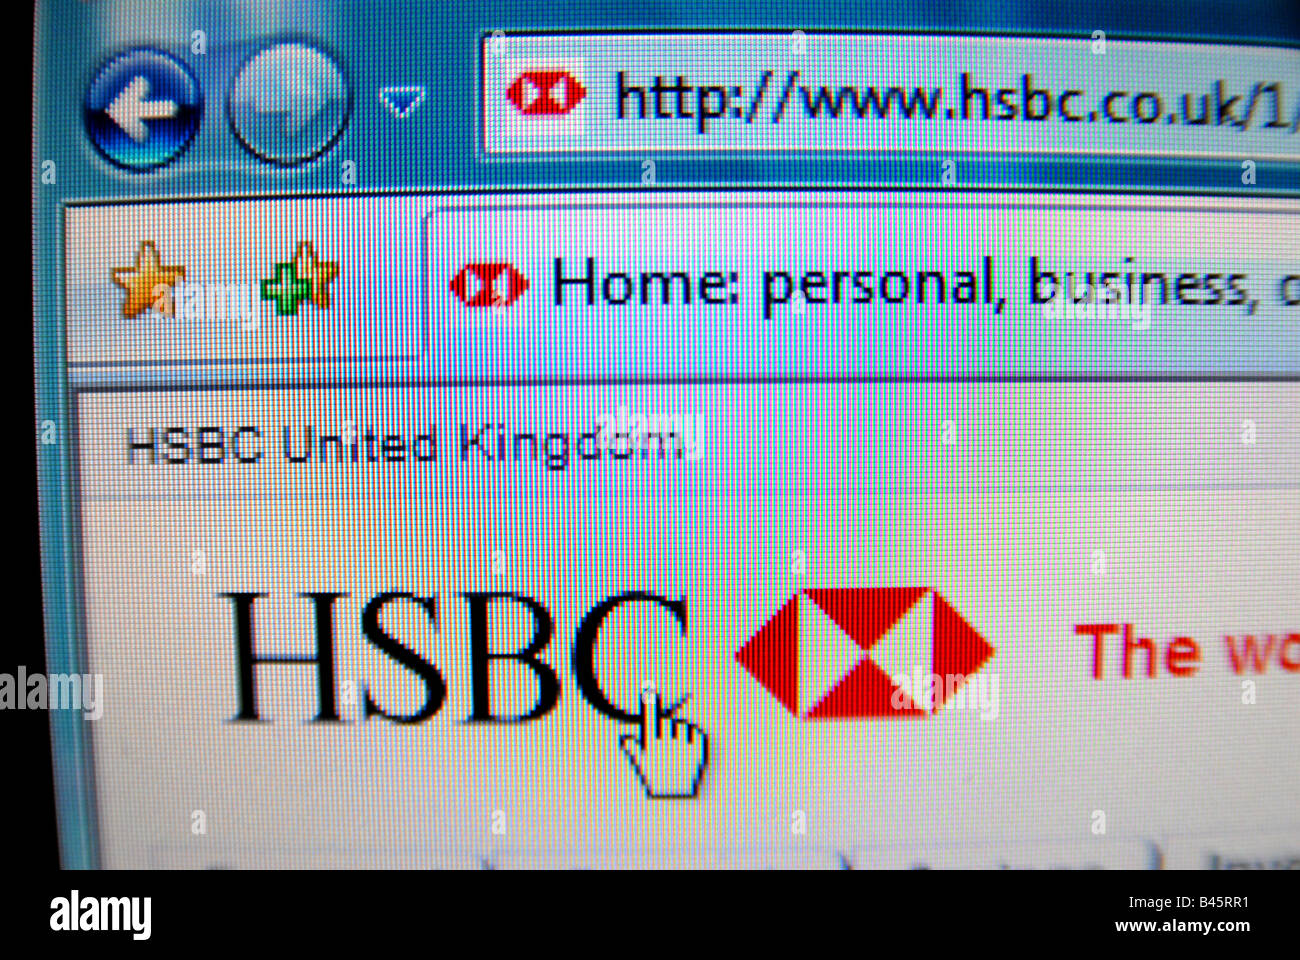 The HSBC banks website, creative focus/composition Stock